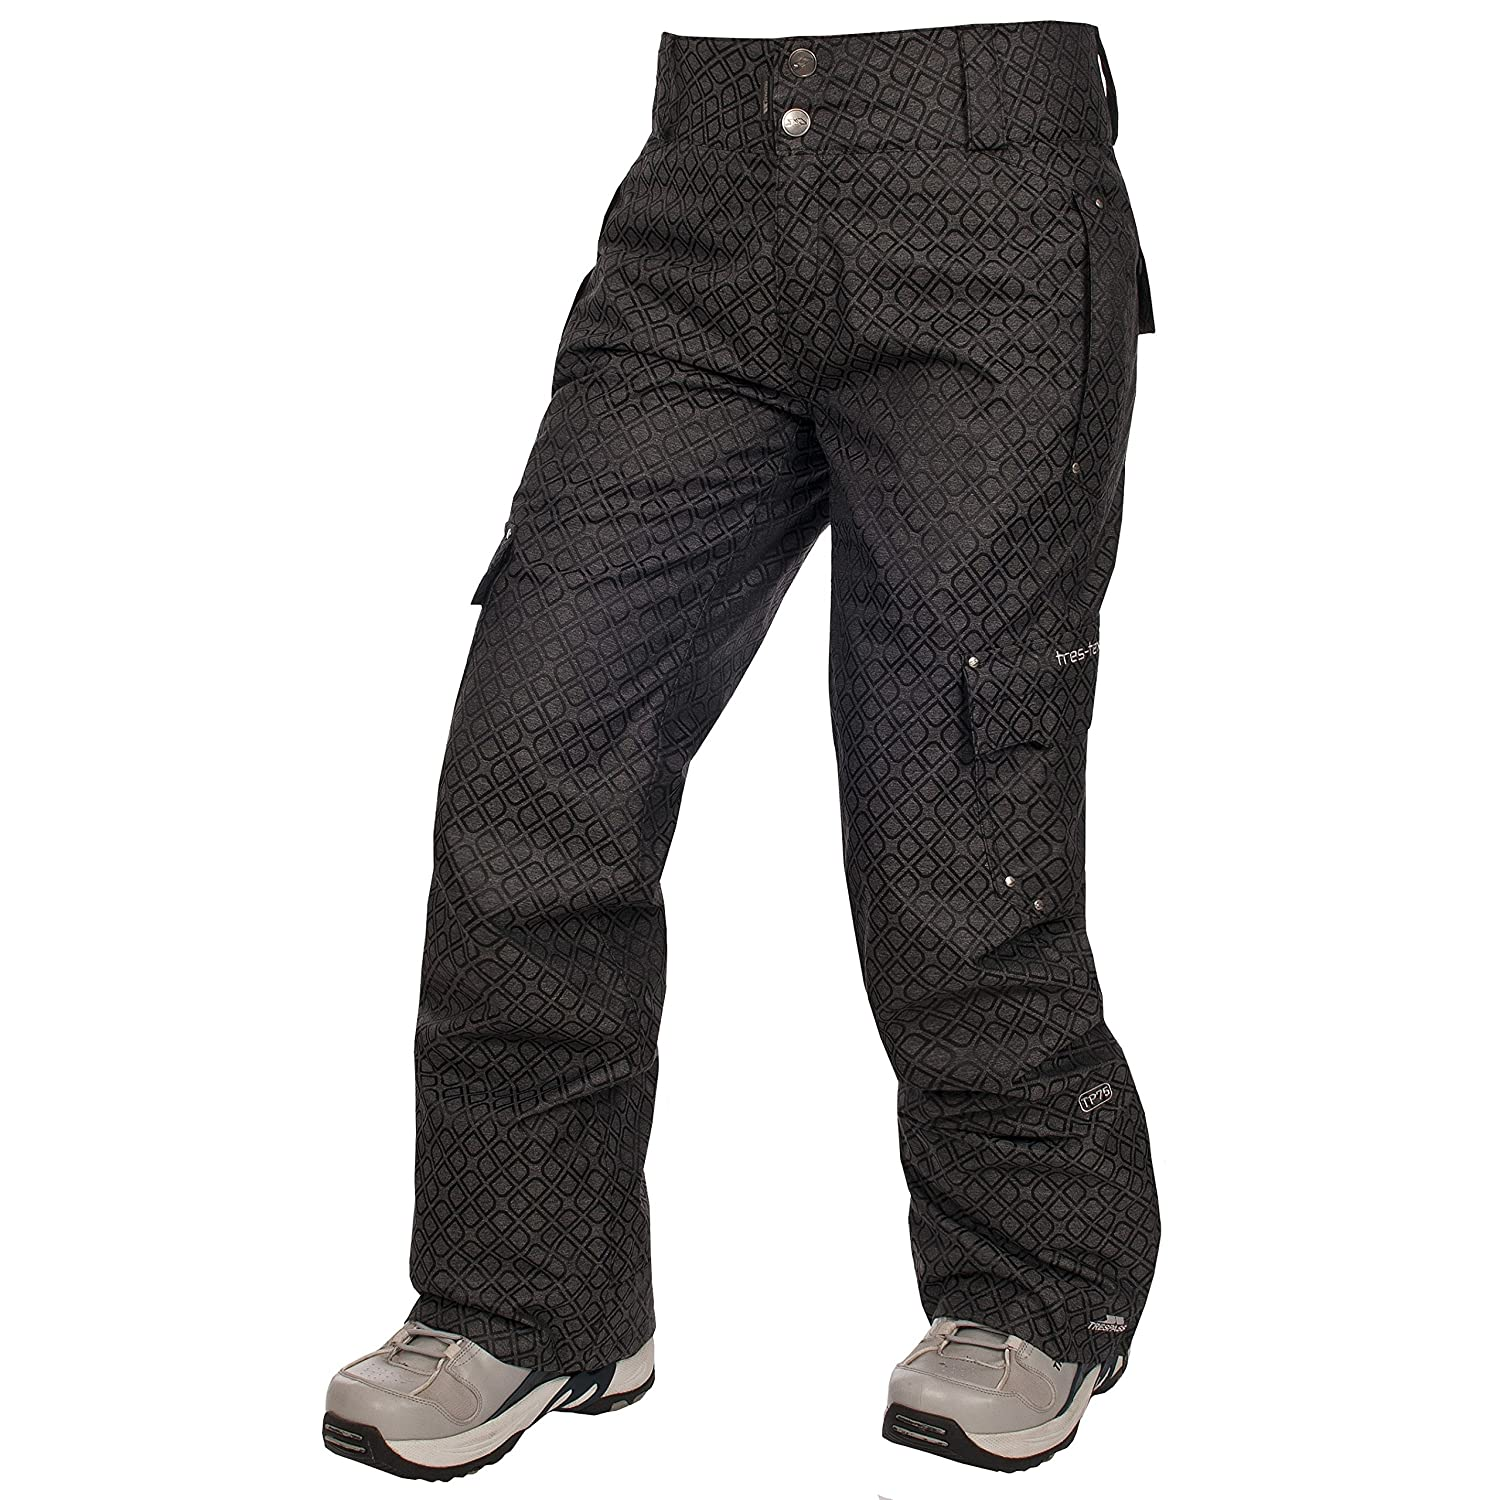 Trespass Damen Ditch Ski-Hose